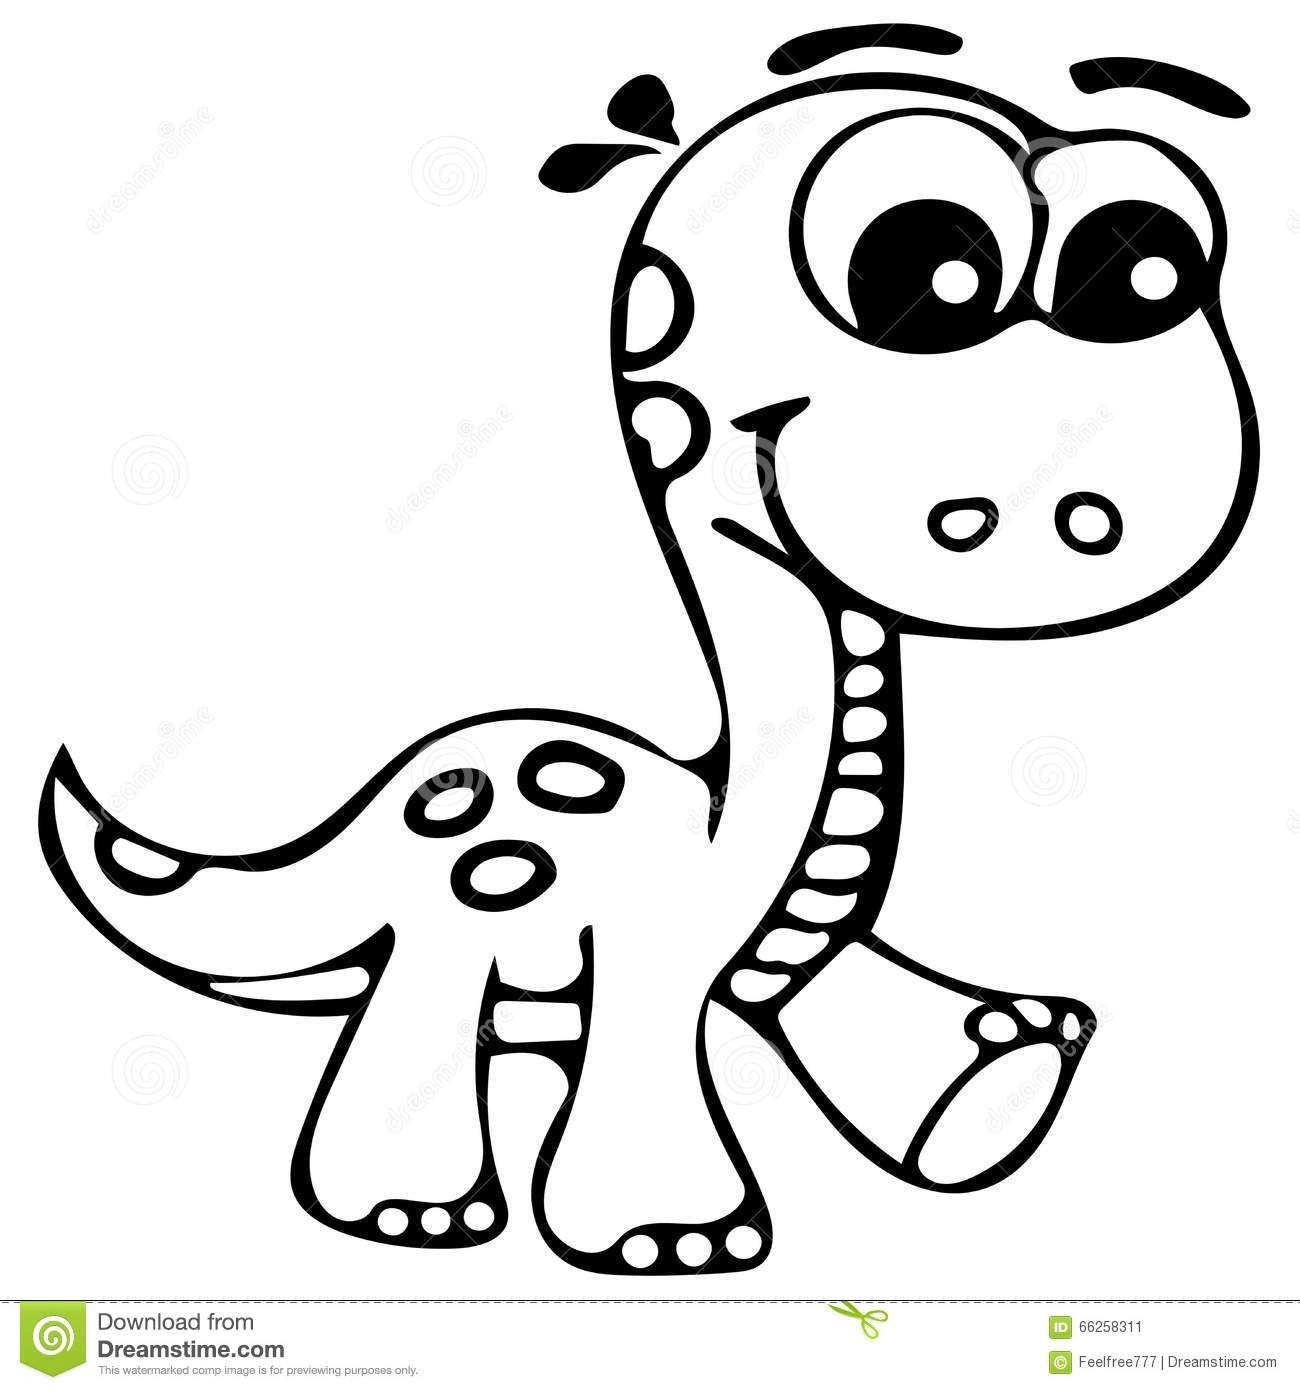 1300x1390 Cute Dinosaur Drawings Outline Coloring Pages Easy Drawing